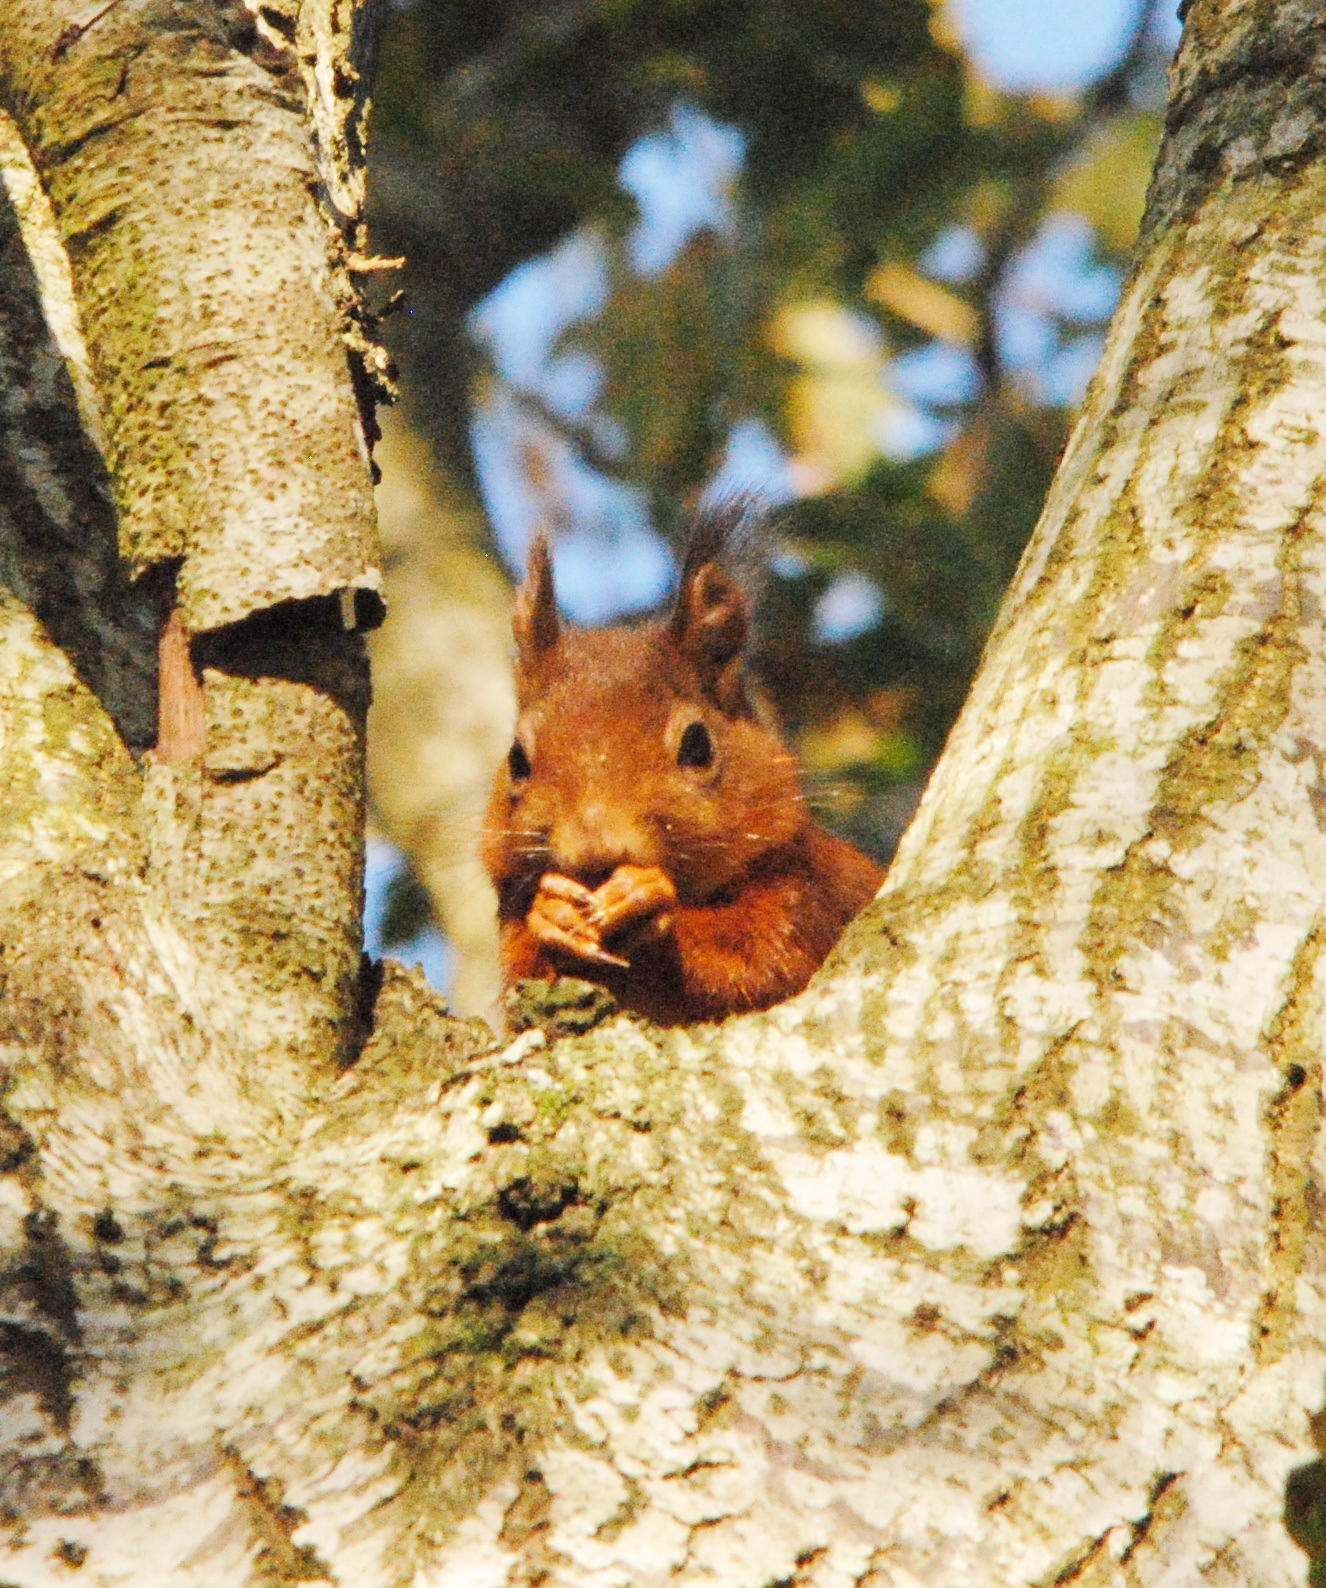 Photo credit: Red squirrel images by Brian Power